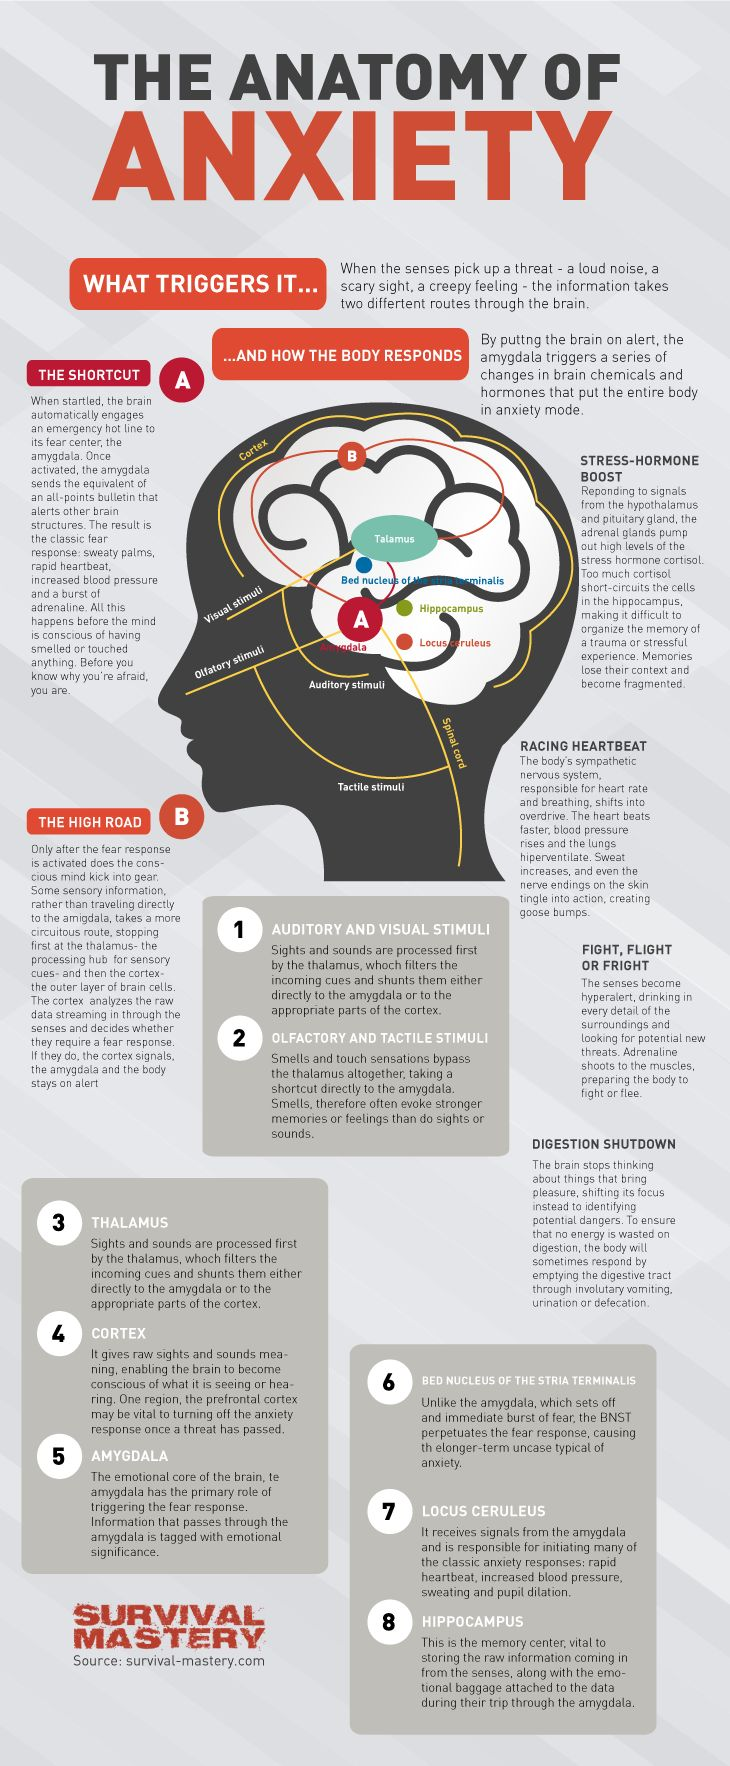 The anatomy of anxiety.  I think that for those who suffer with anxiety, knowing that it is a autonomous reaction is comforting.  Once you realize why you are reacting with anxiety it's easier to jump right in to retraining your response and calming that fight or flight chemical release